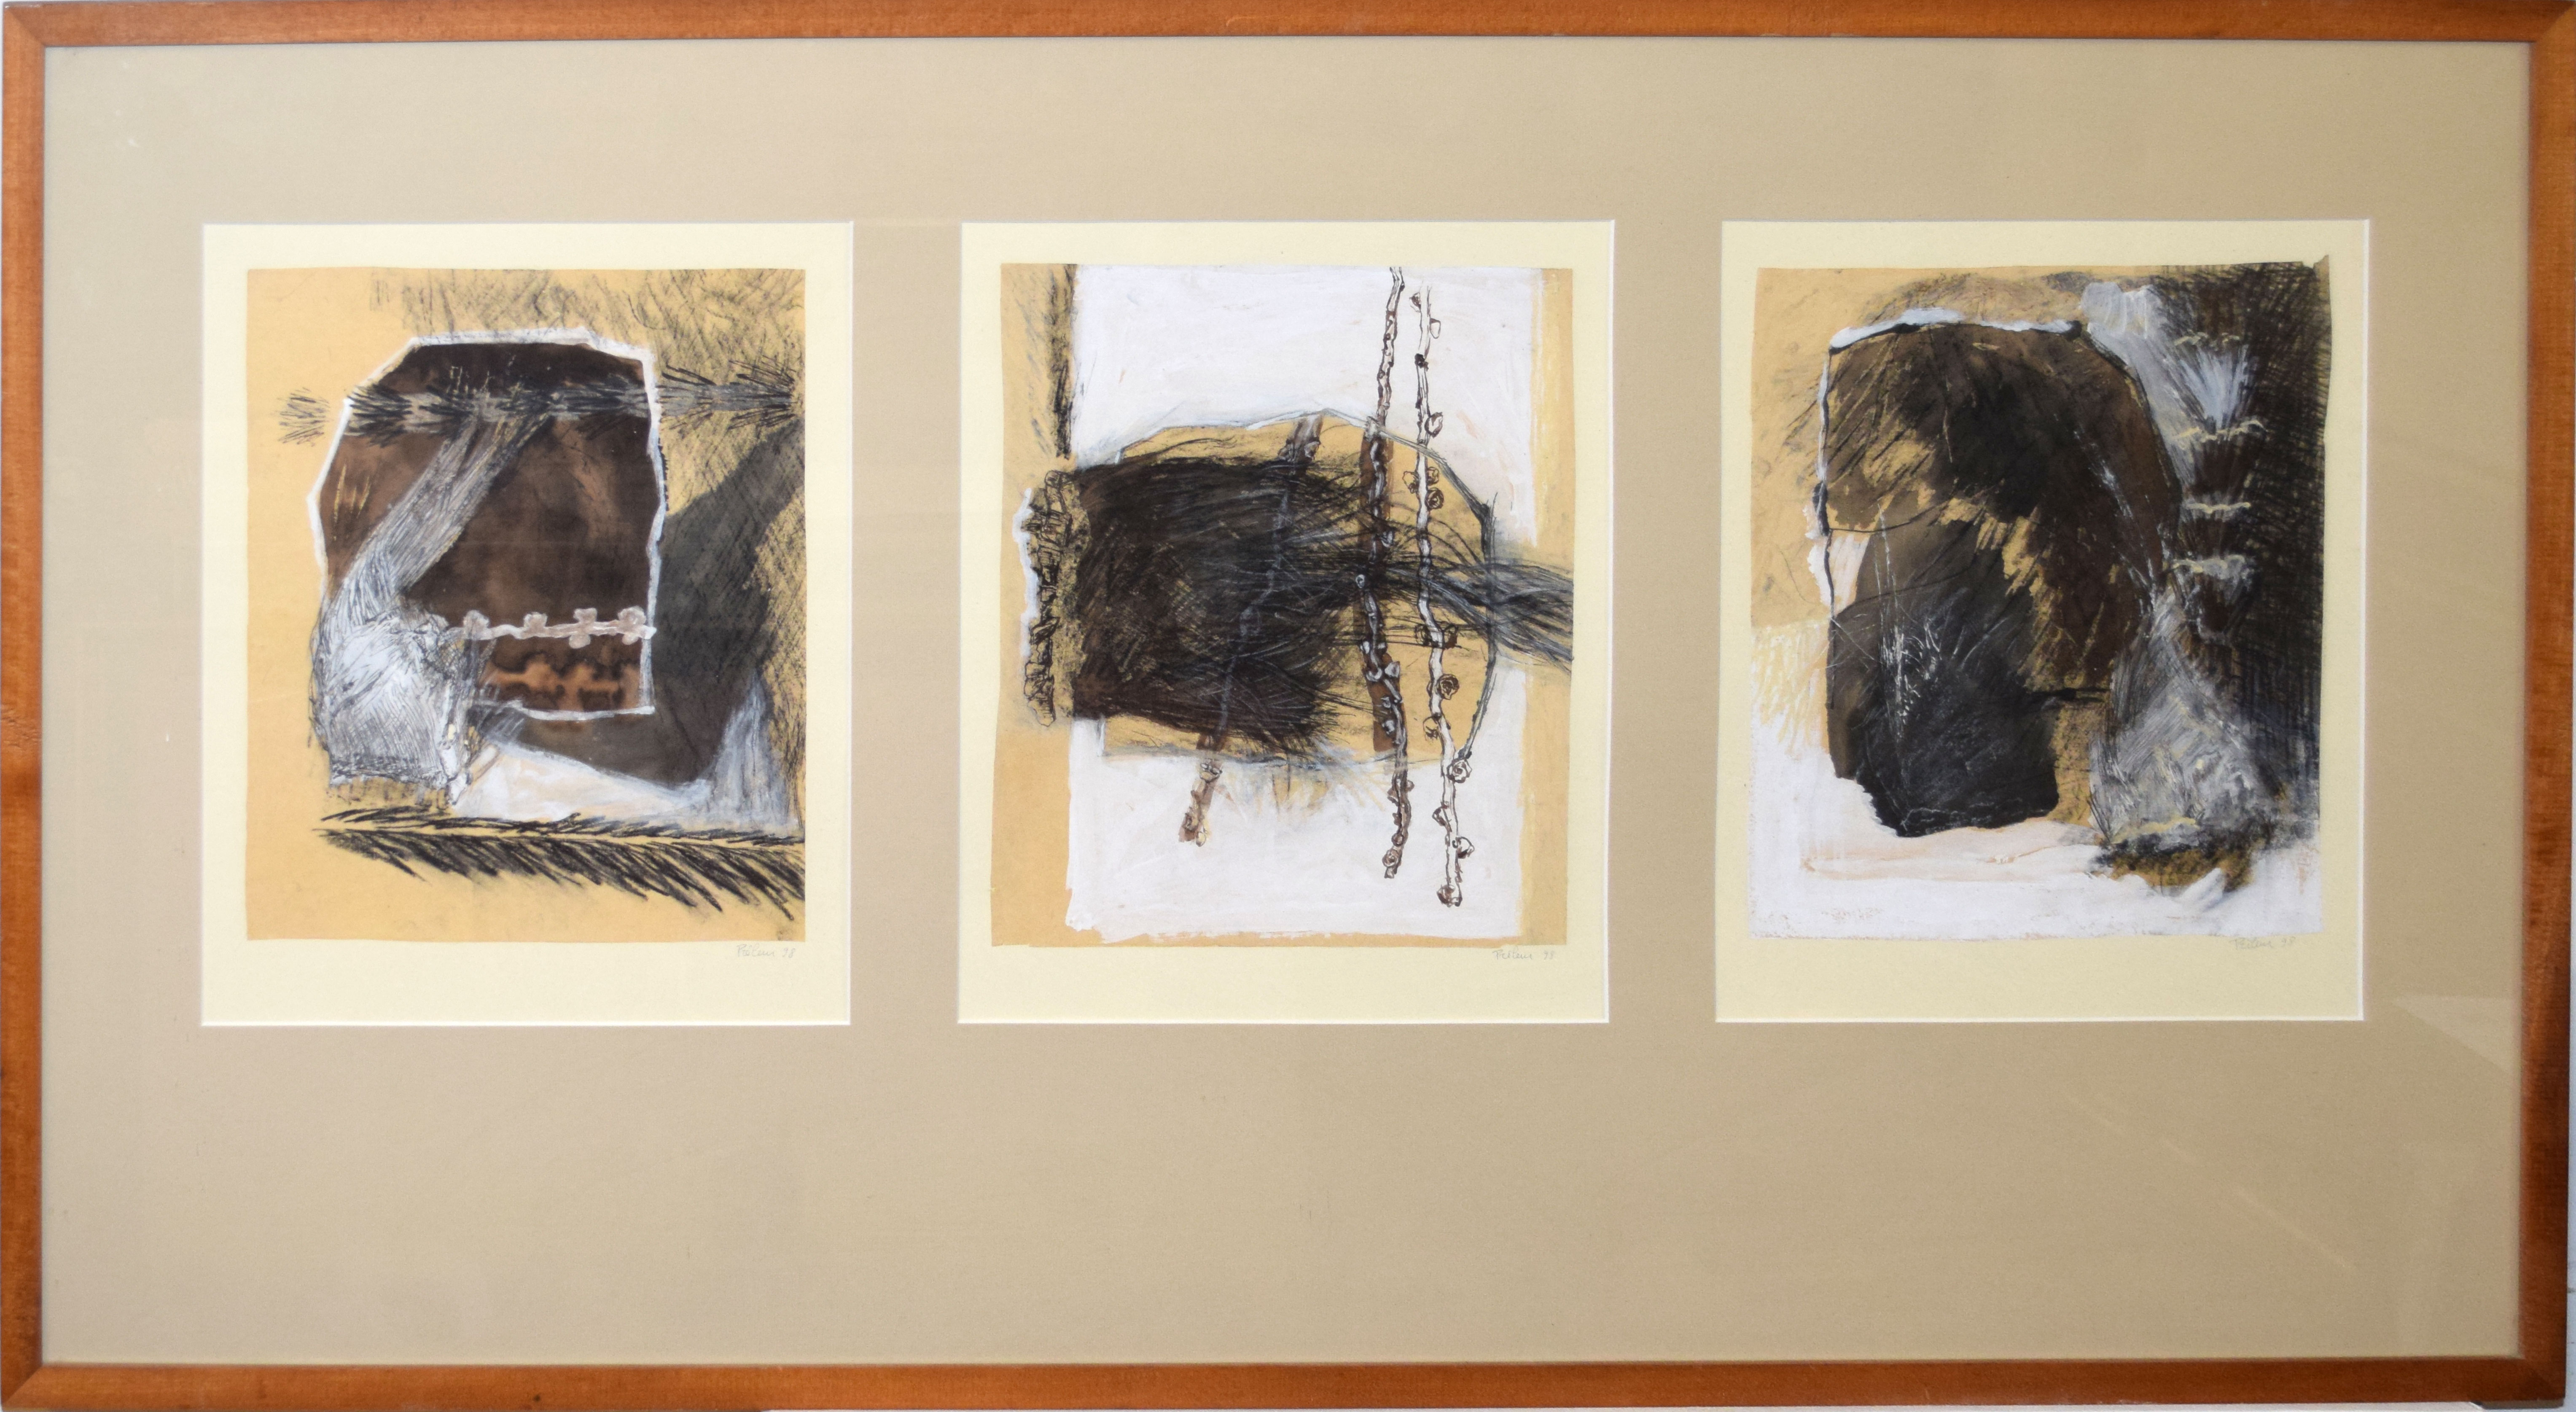 Florence Nicole Preleur-Poulain (20th century), Abstract triptych, three mixed medias in one